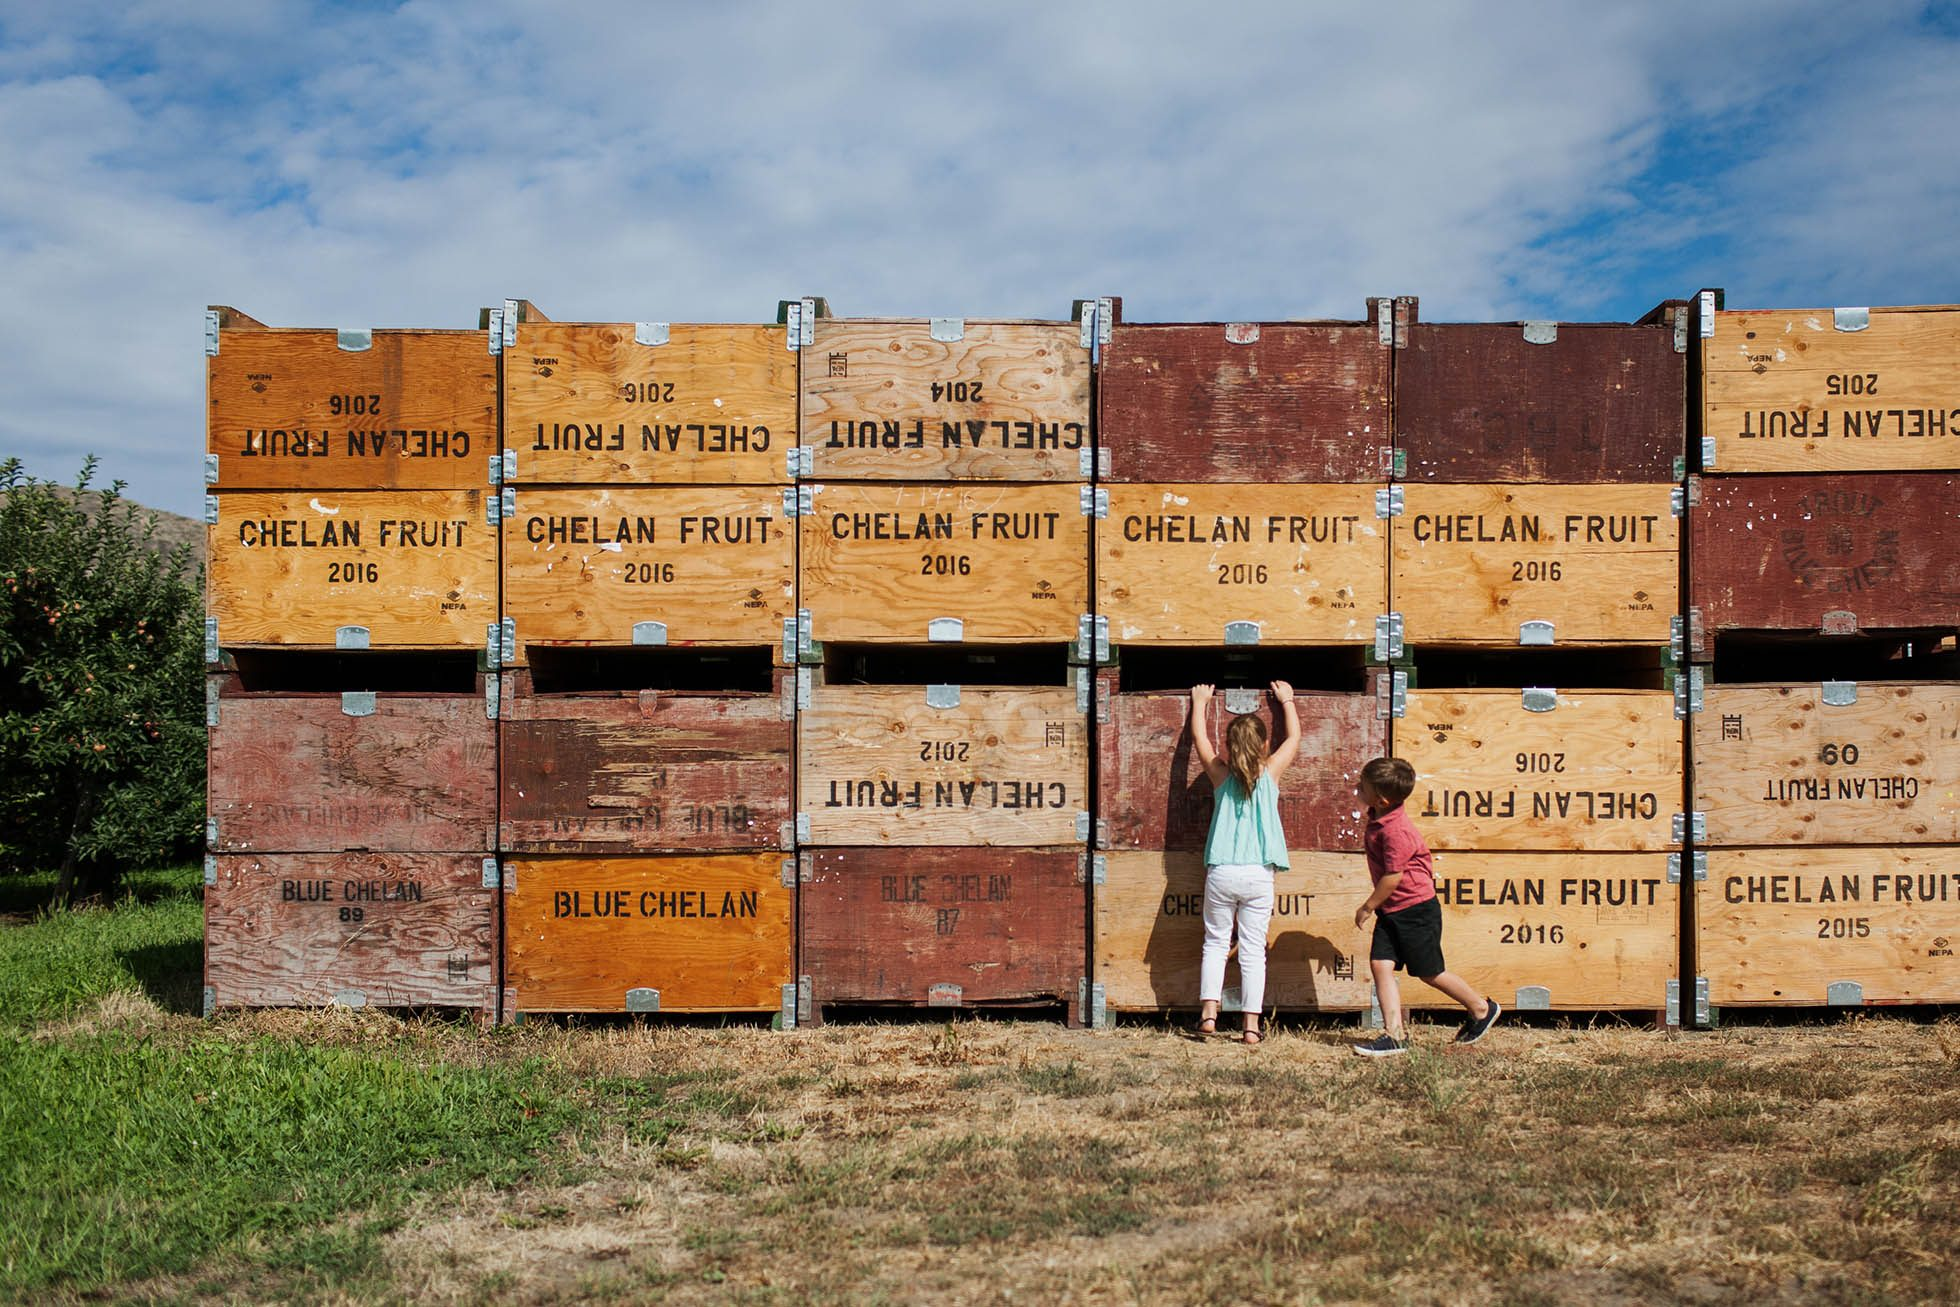 Kids playing near fruit market boxes stacked high in the orchard.